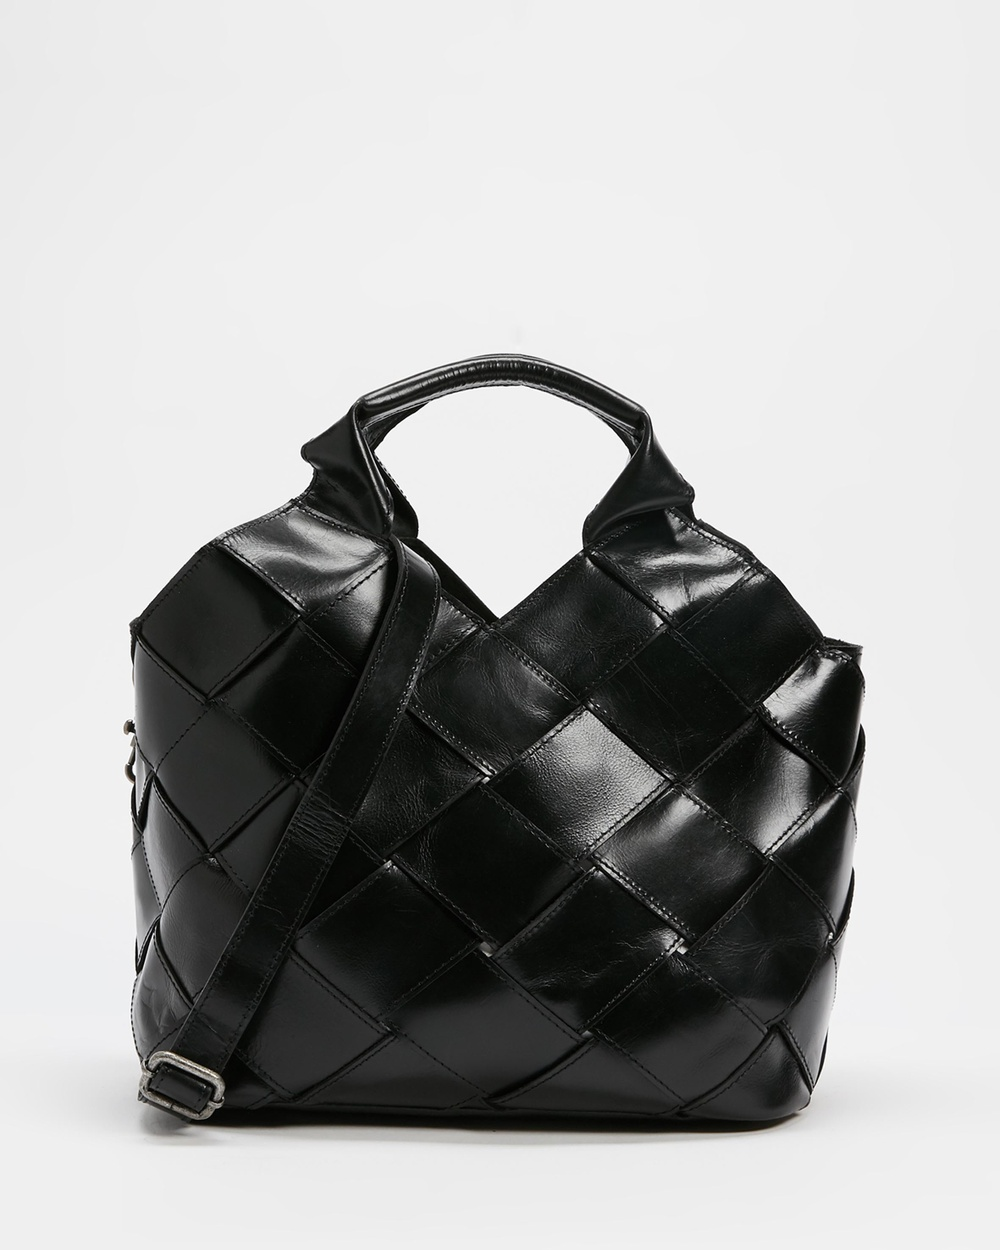 AERE Woven Leather Tote Handbags Bag Black Leather